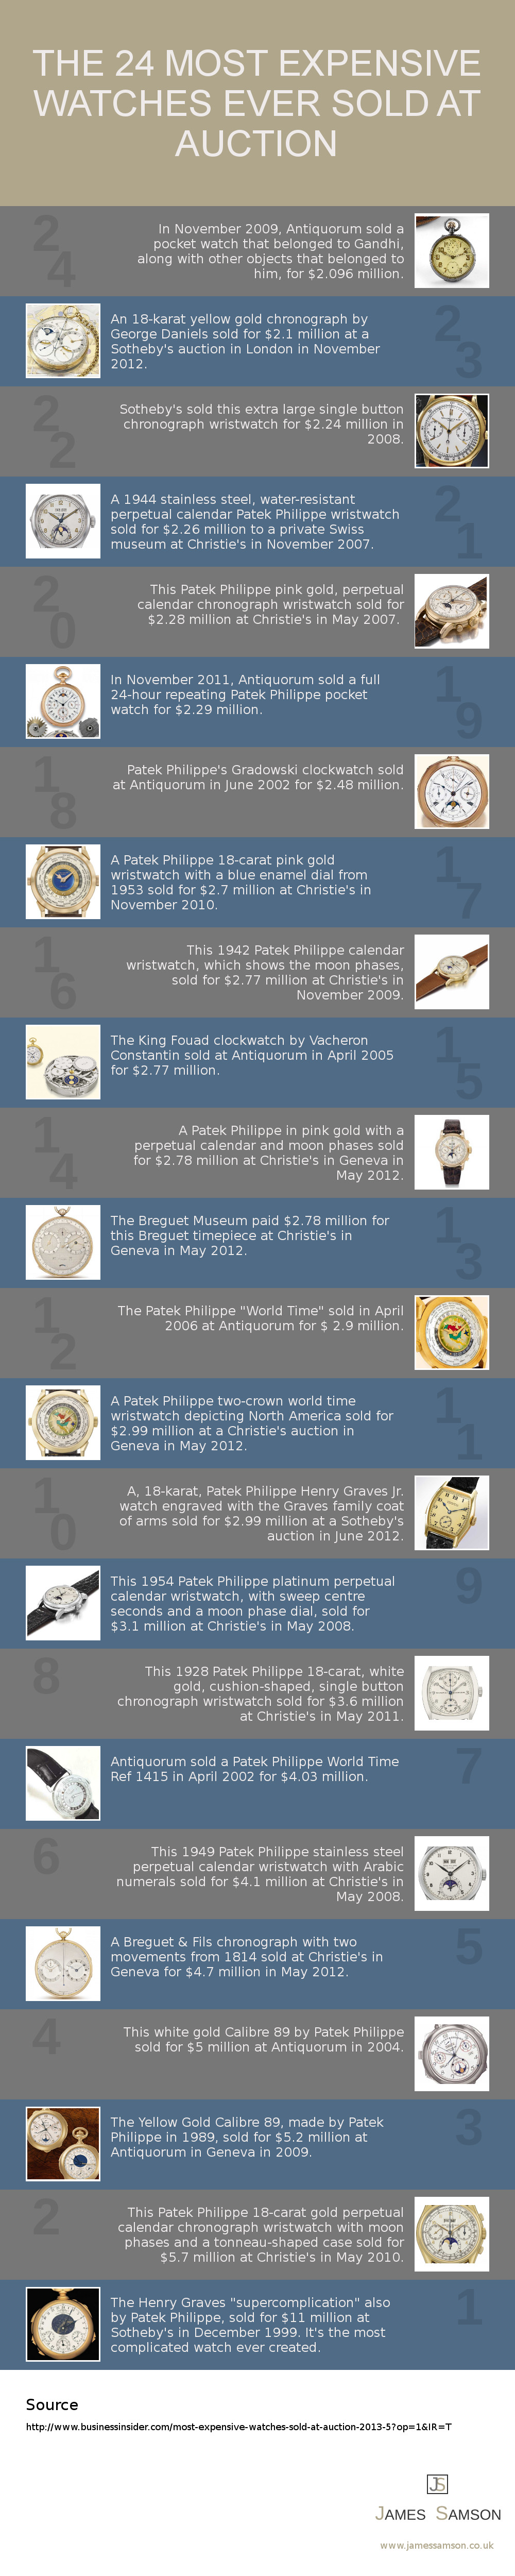 most-expensive-watches-sold-at-auction